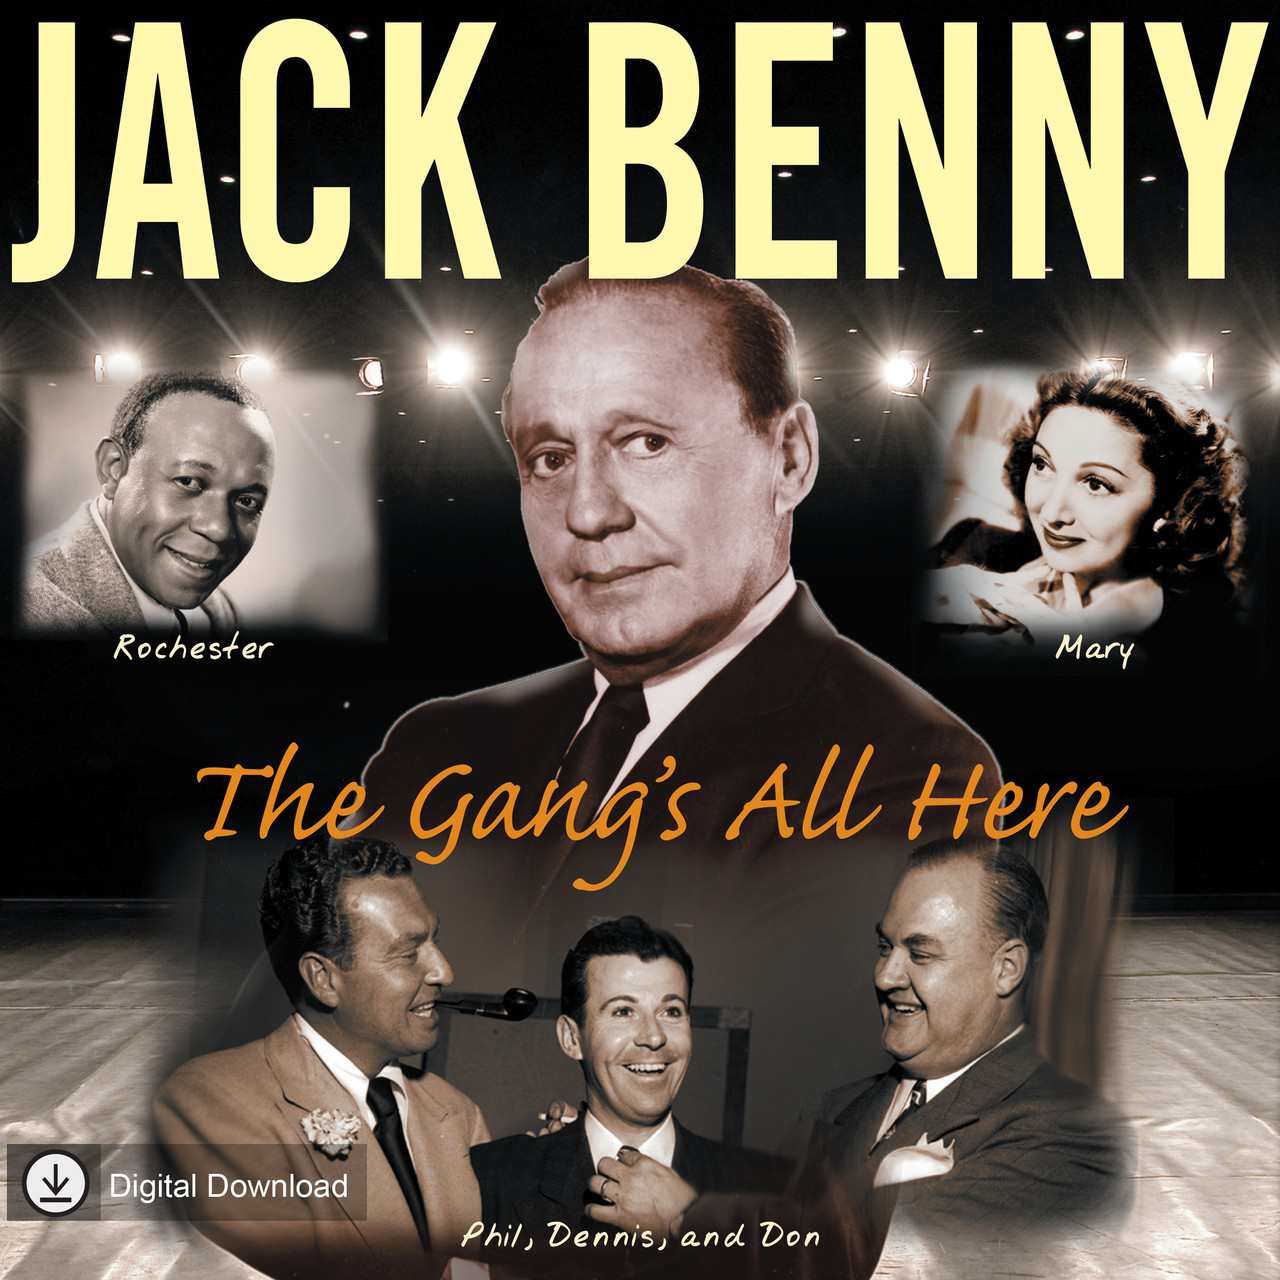 Jack Benny: The Gang's All Here (MP3 Download)